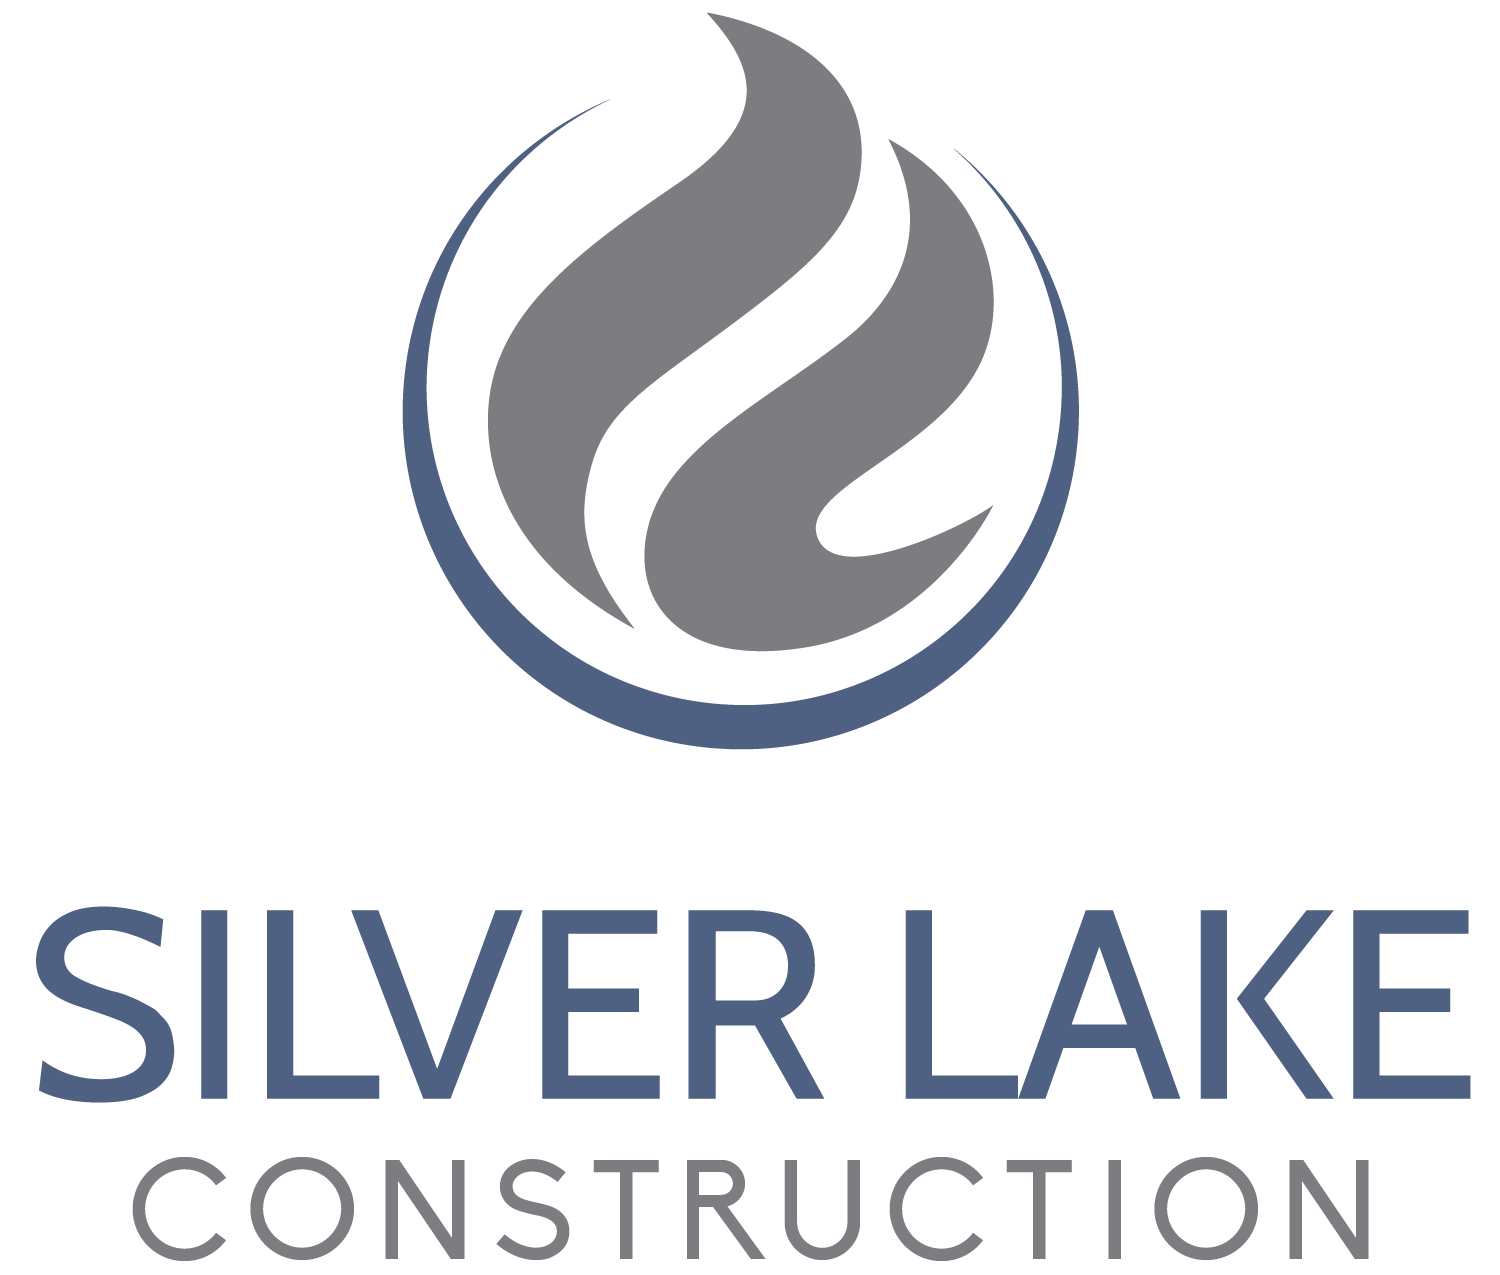 Silver Lake Construction